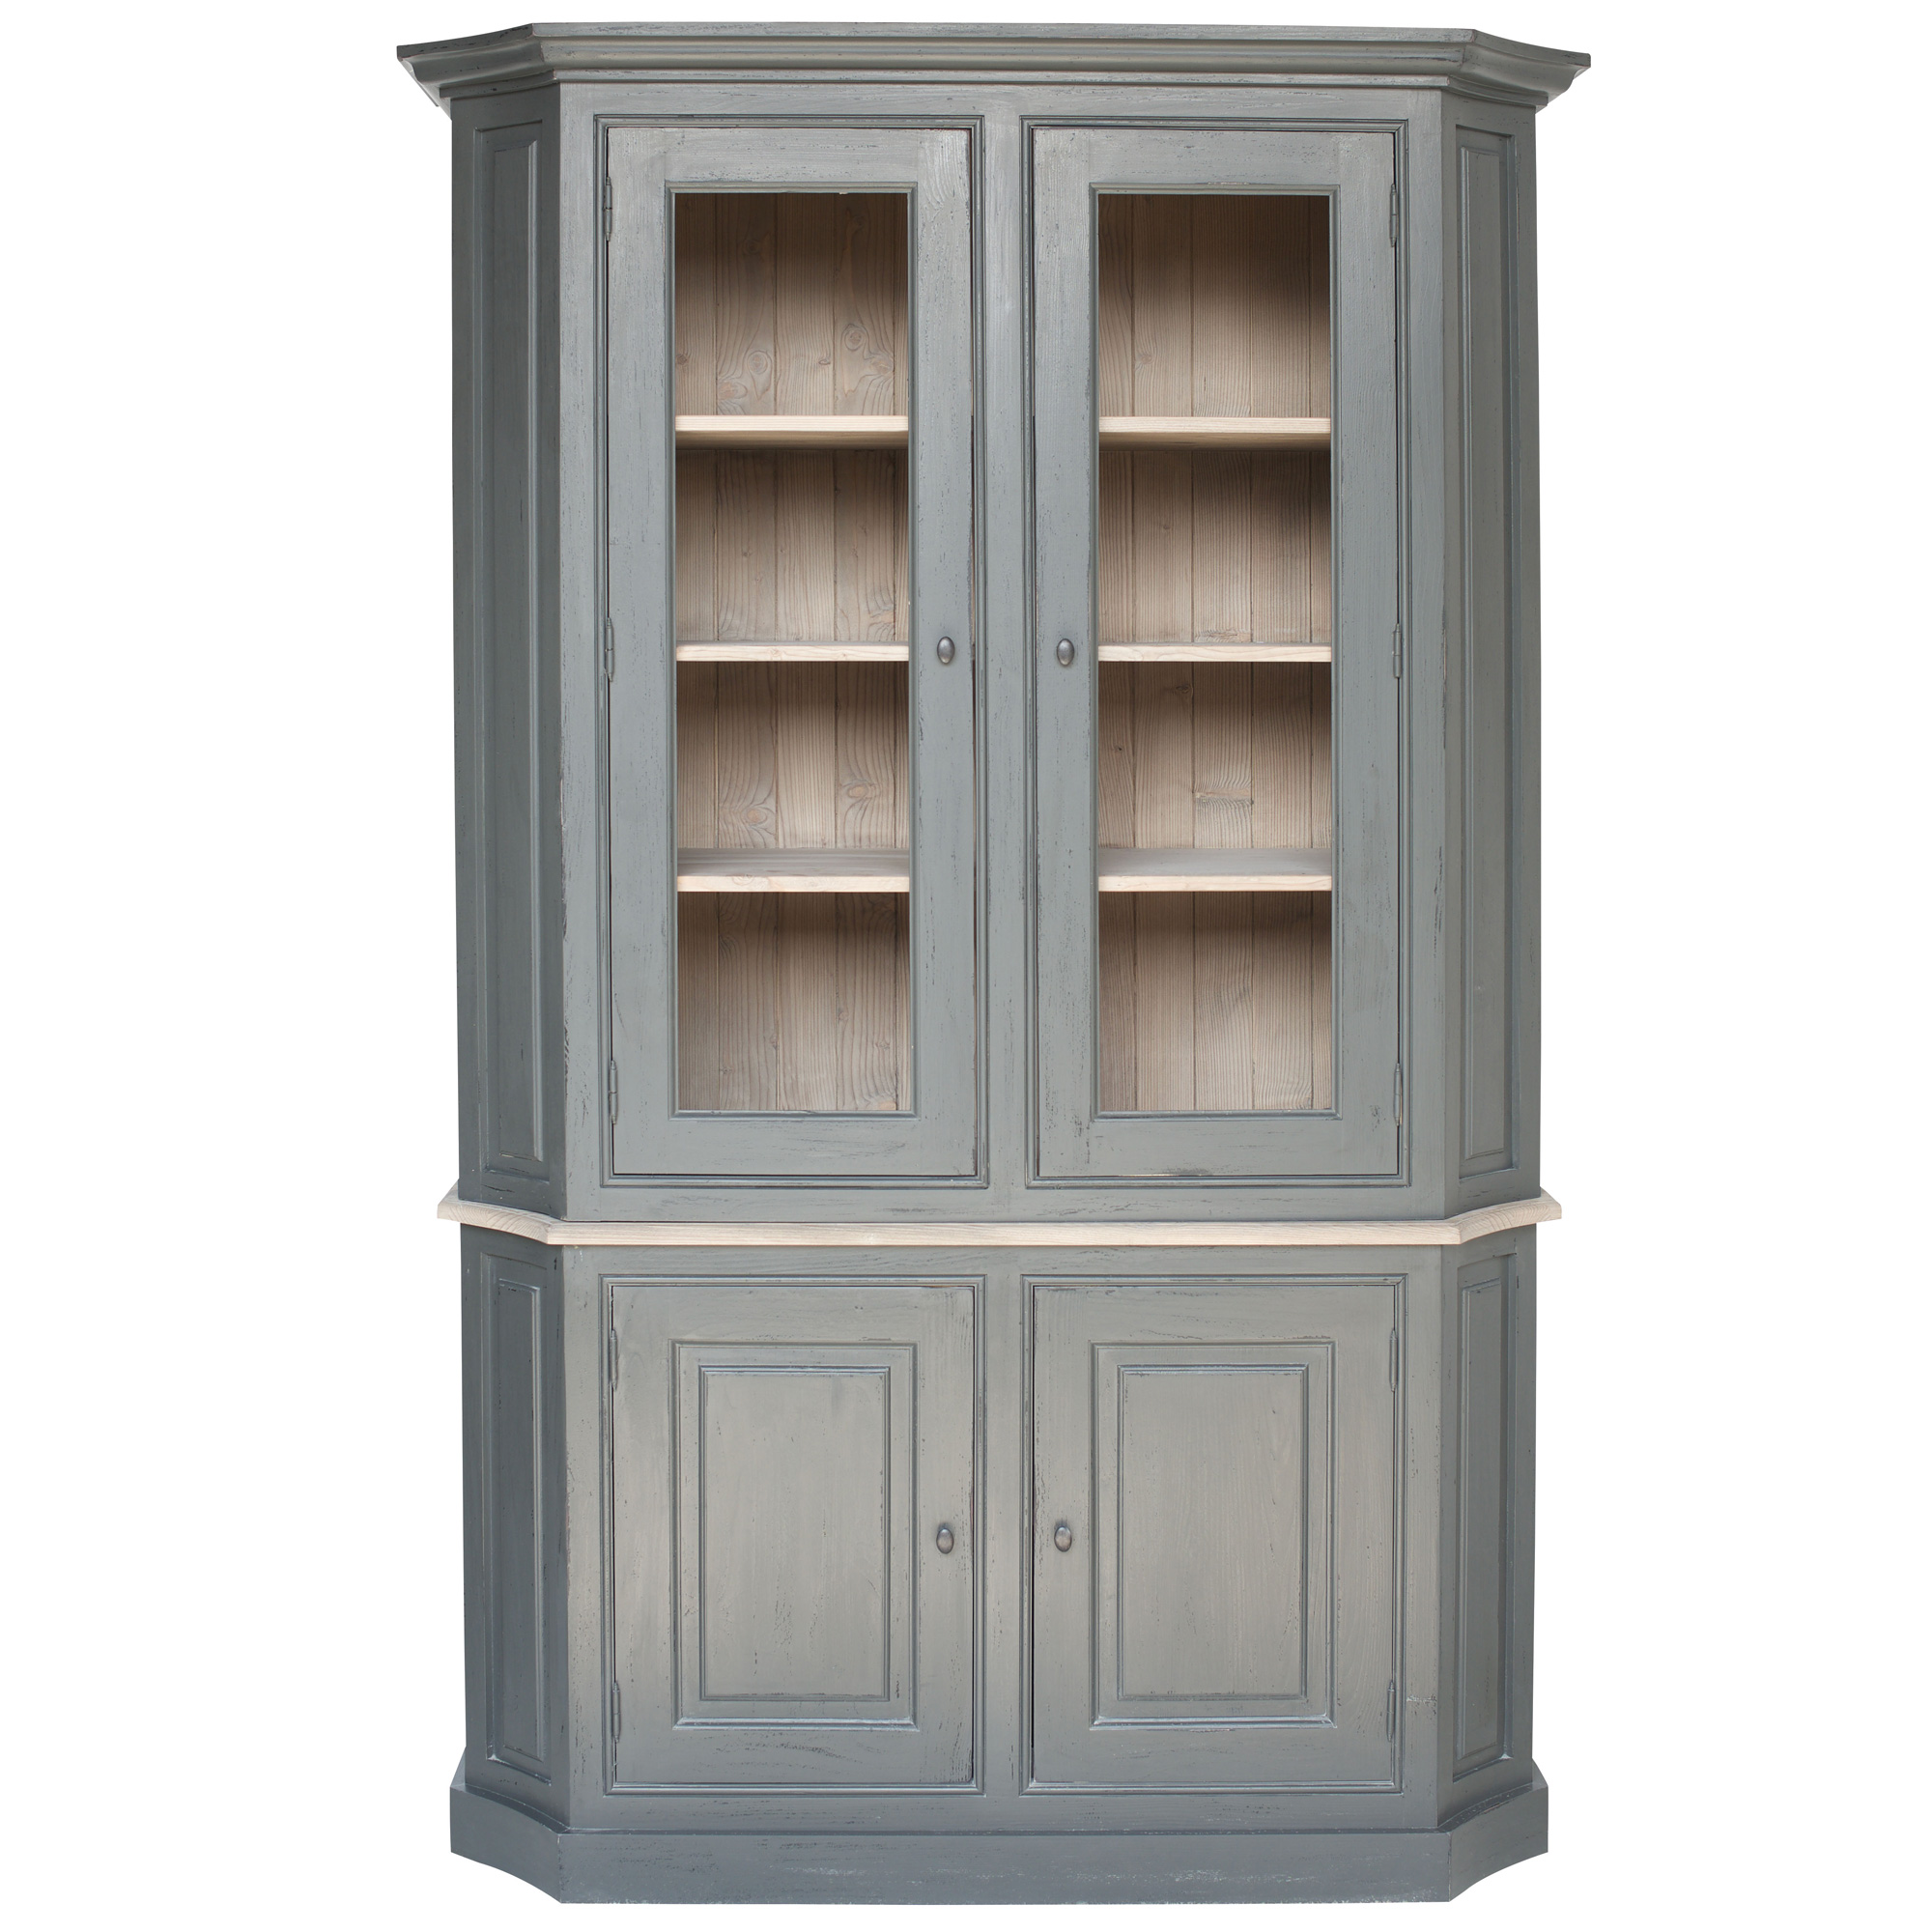 French Display Cabinet With Curved Front